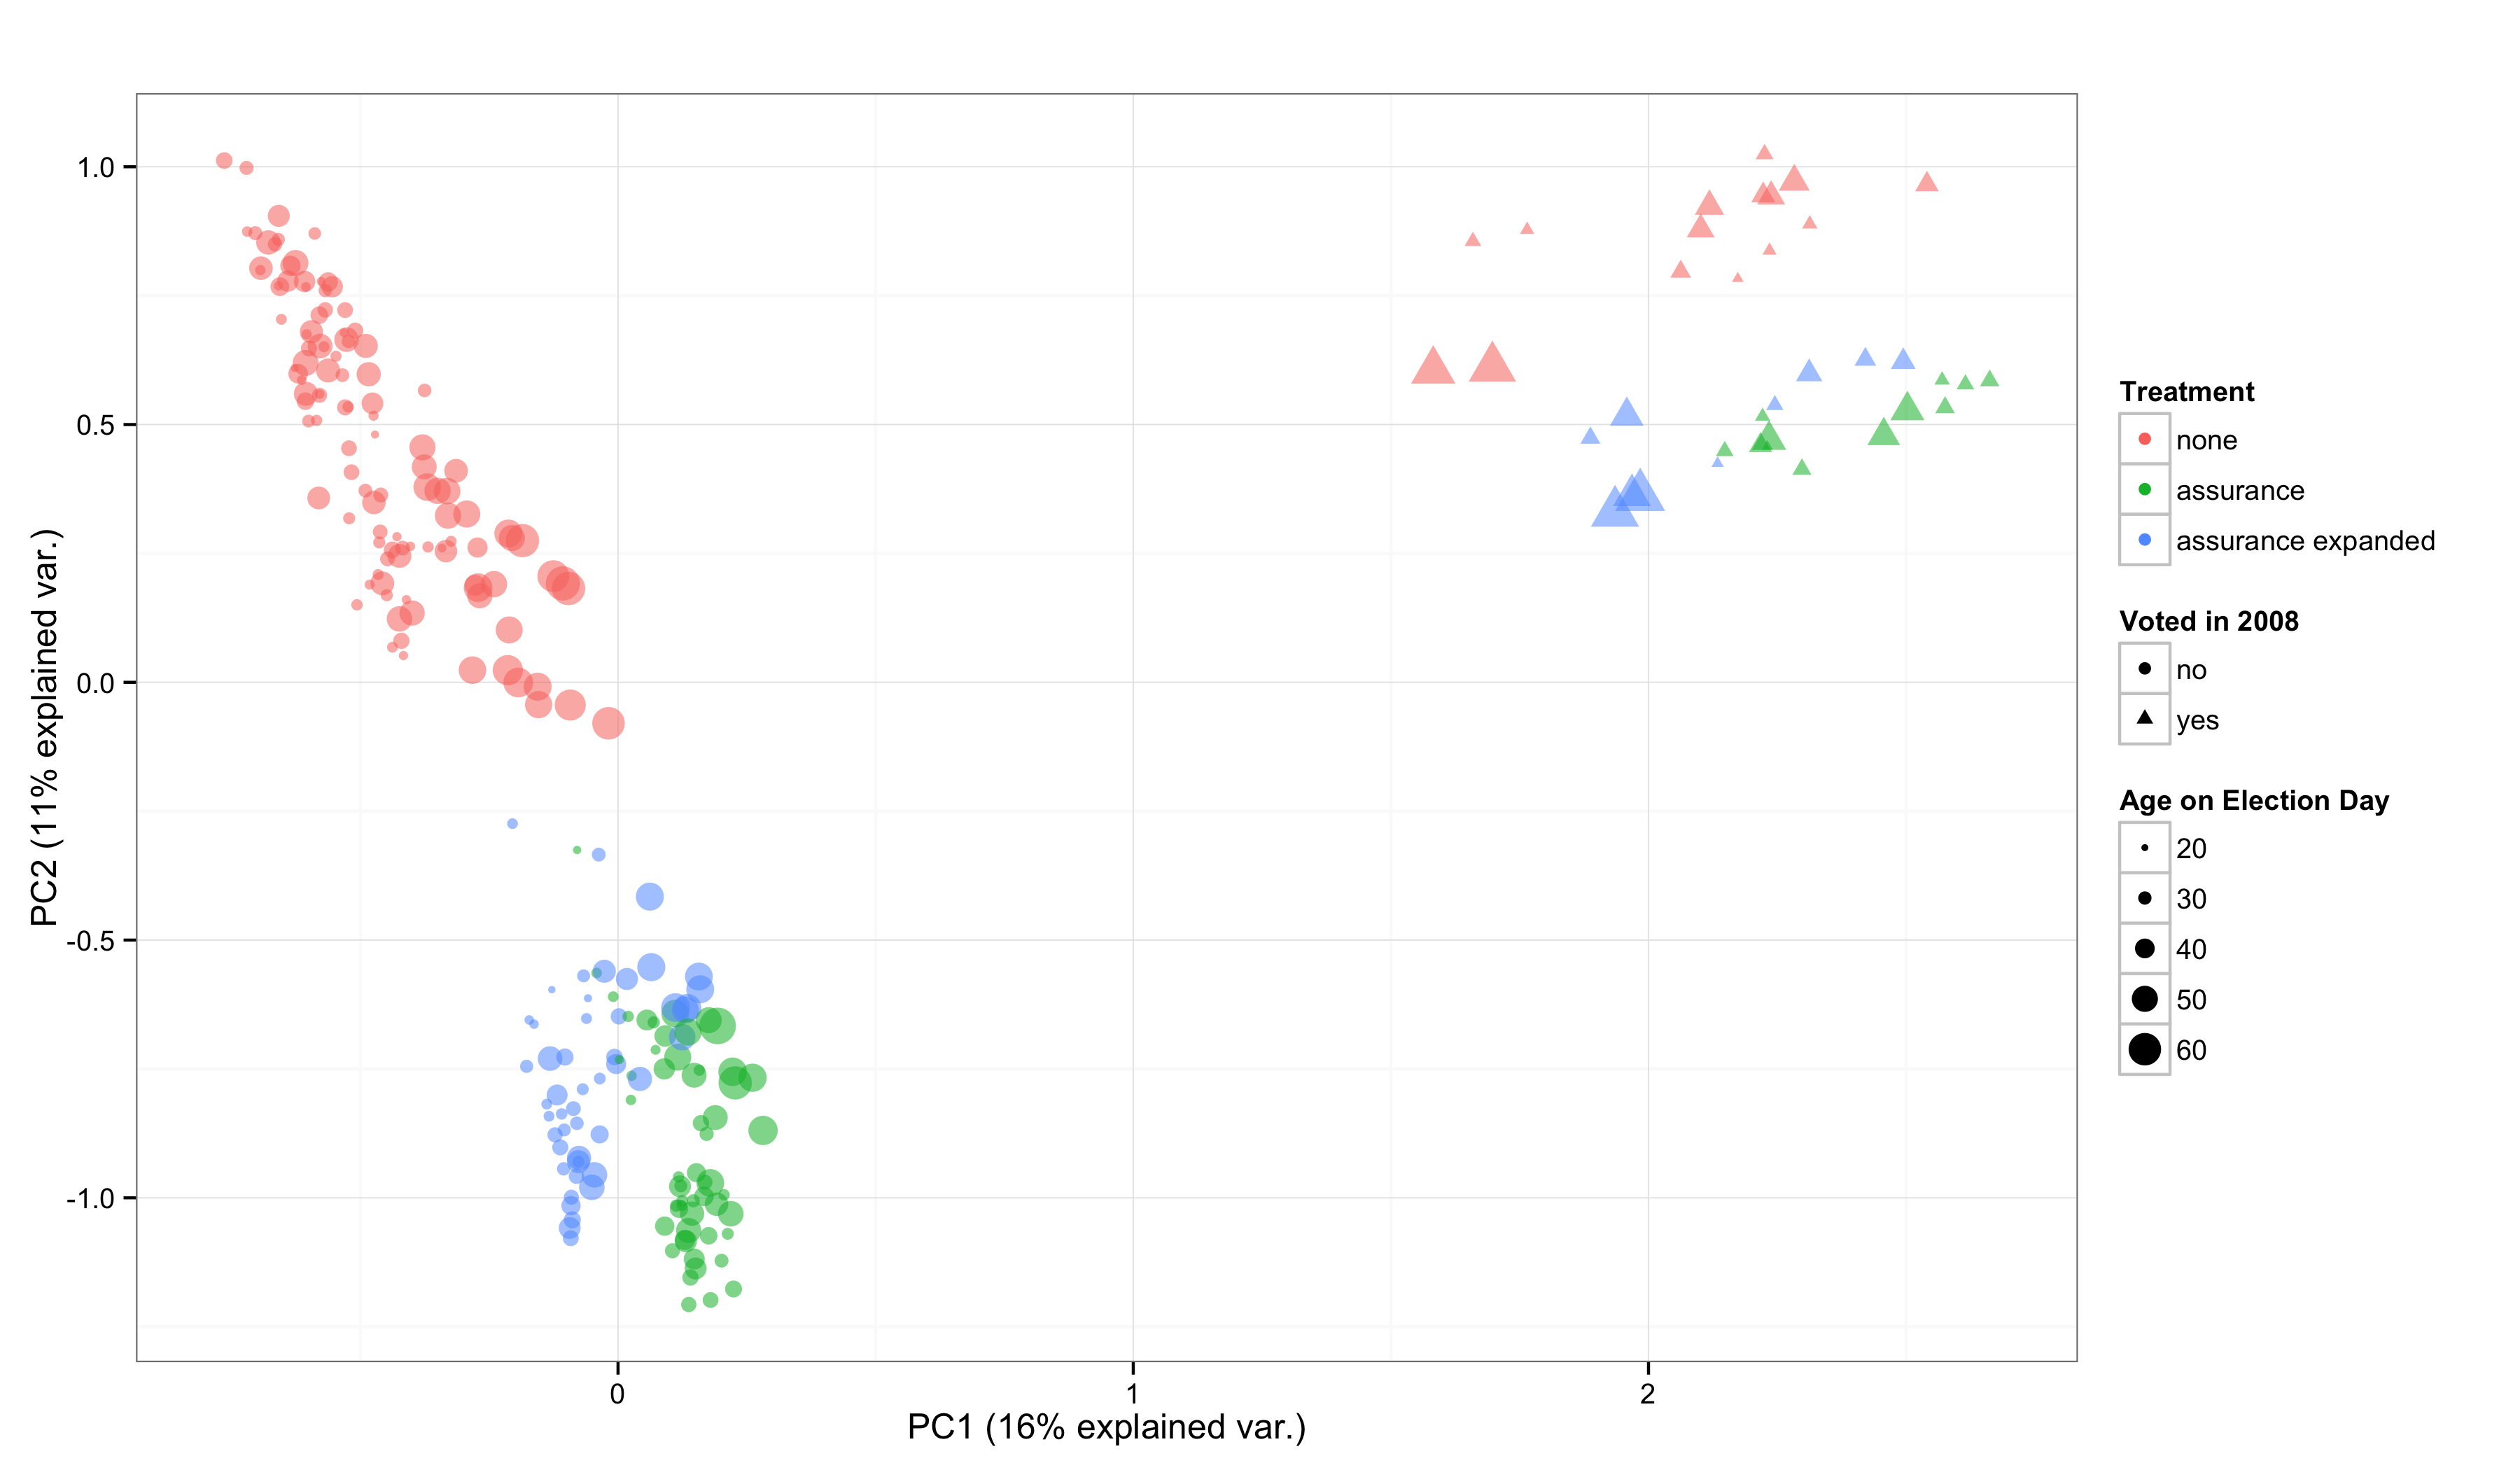 The proximity of the training data, colored according to the encouragement condition implemented by Gerber et al. (2015), with the shape of the points mapped to whether the individual had voted in the 2008 election and the size of the point mapped to the individual's age.